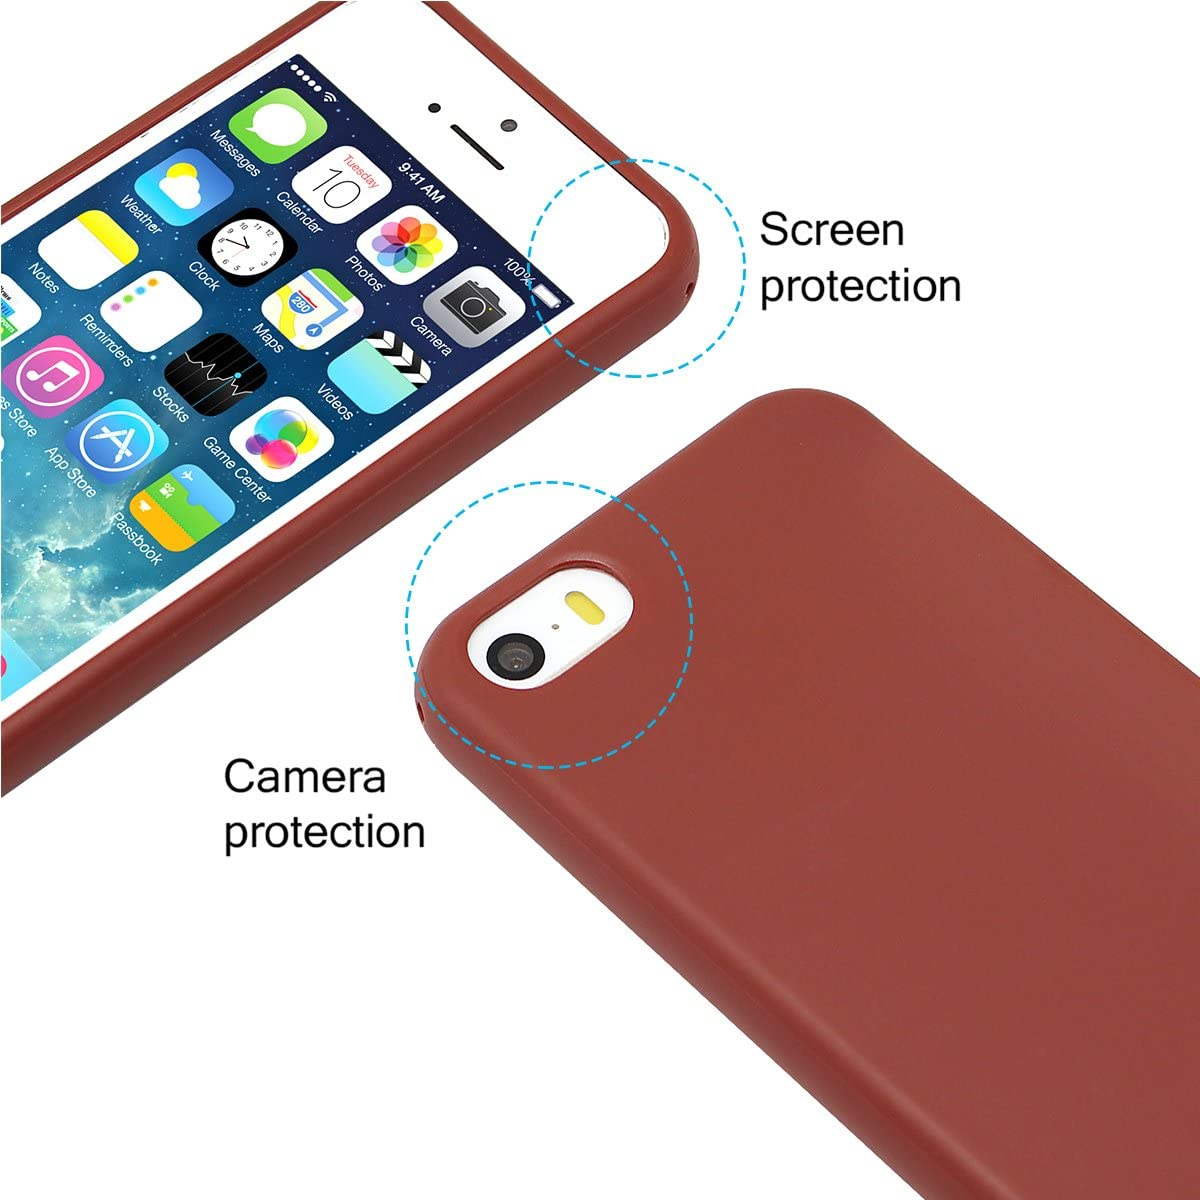 MUNDULEA Compatible iPhone SE (2016 Edition)/iPhone 5/iPhone 5s Case,Shockproof TPU Ptotective Cover Compatible iPhone 5s (Brown)